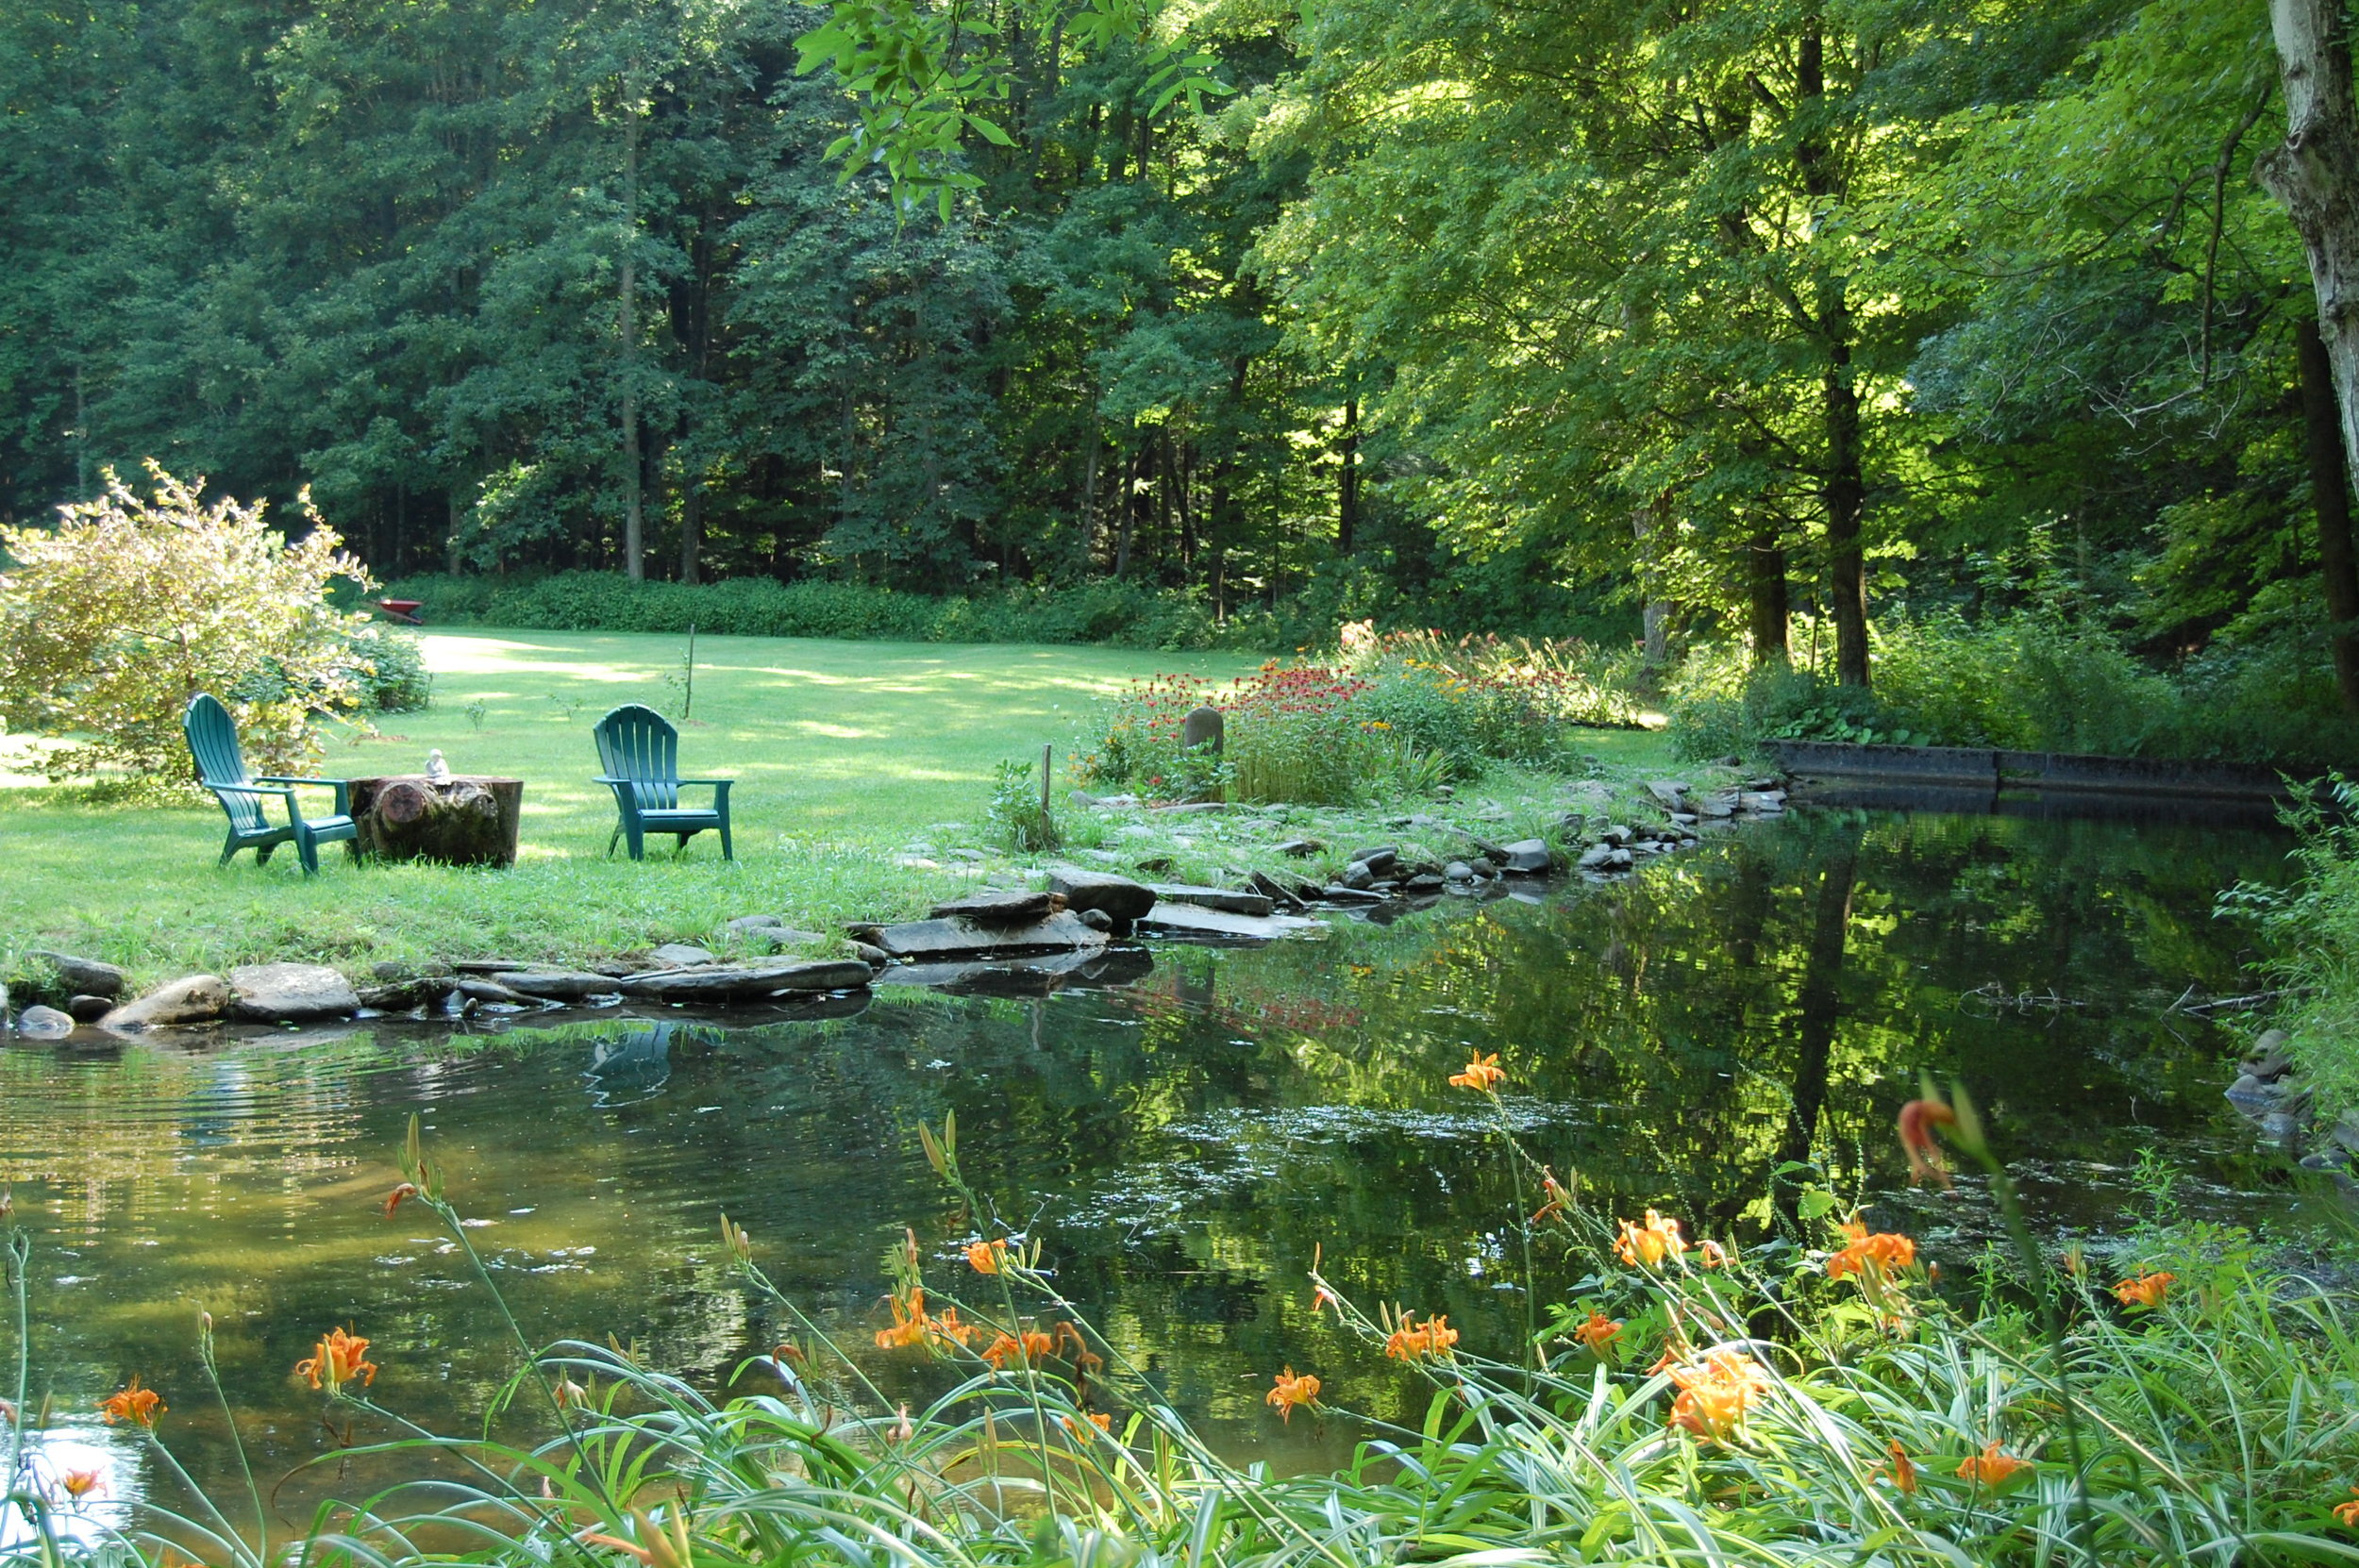 Vacation rentals and lodging at Wellnesste Lodge in Central New York State